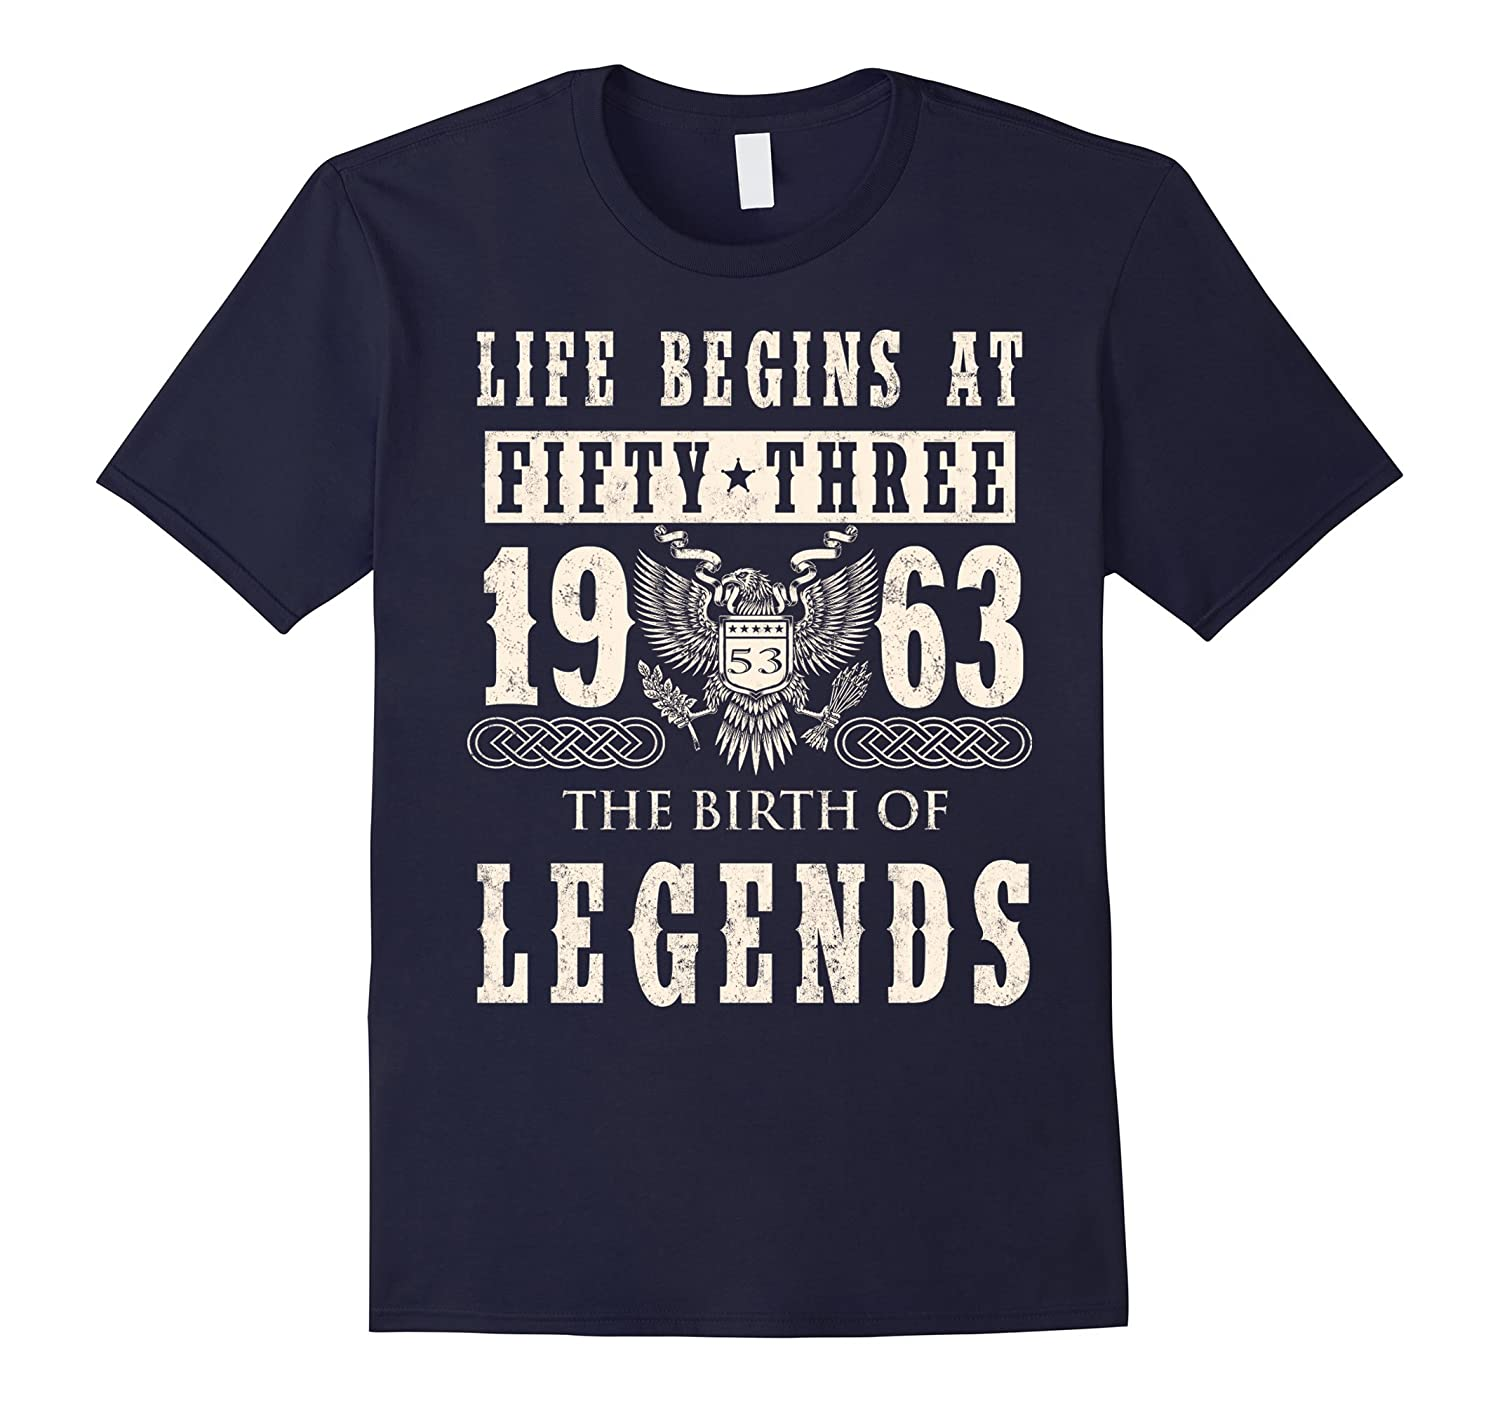 1963 The birth of Legend shirt-4LVS